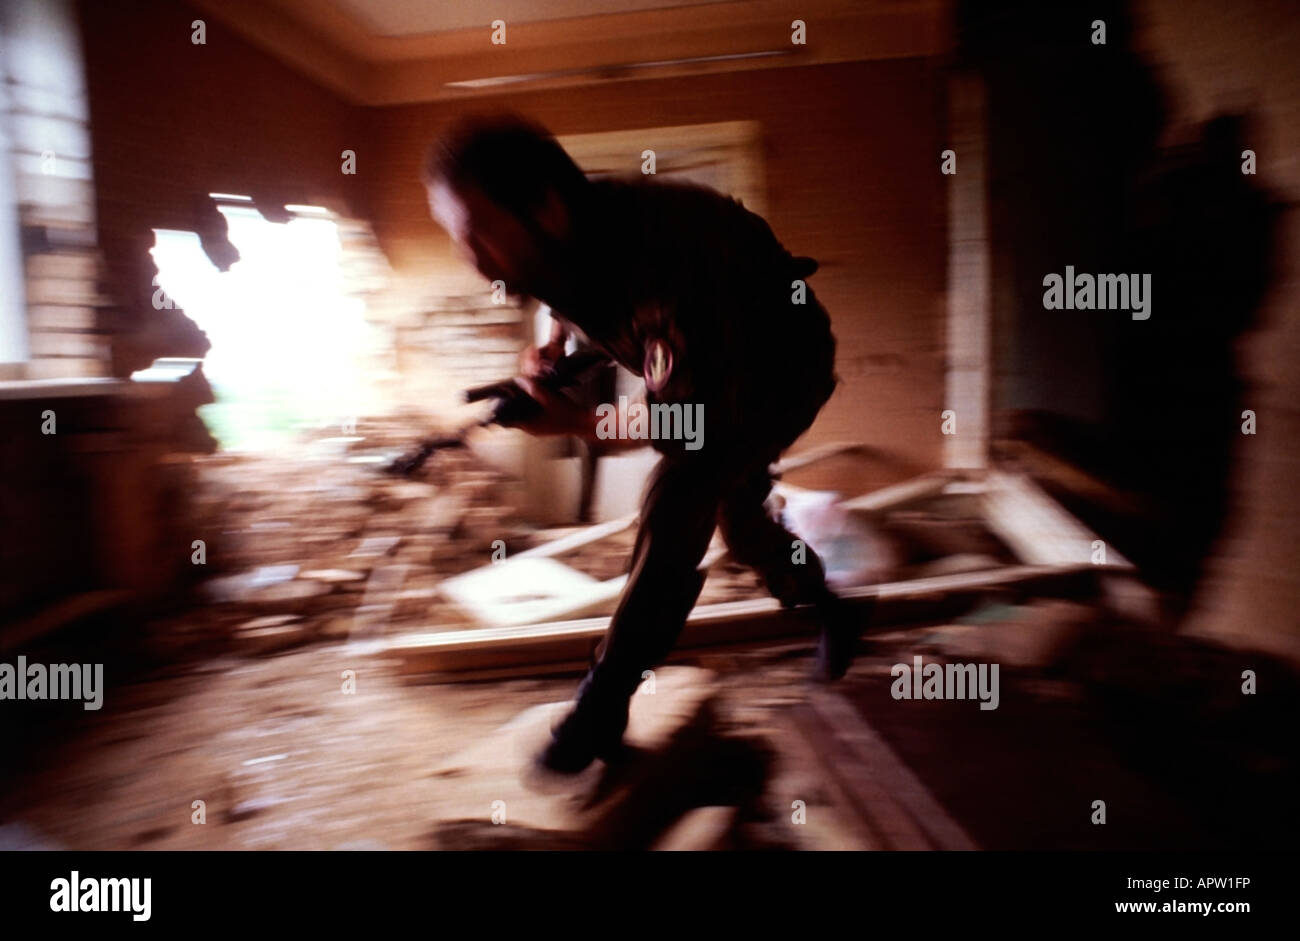 Armed soldier runs through a bombed out house during fighting in Tskhinvali the capitol of South Ossetia. - Stock Image